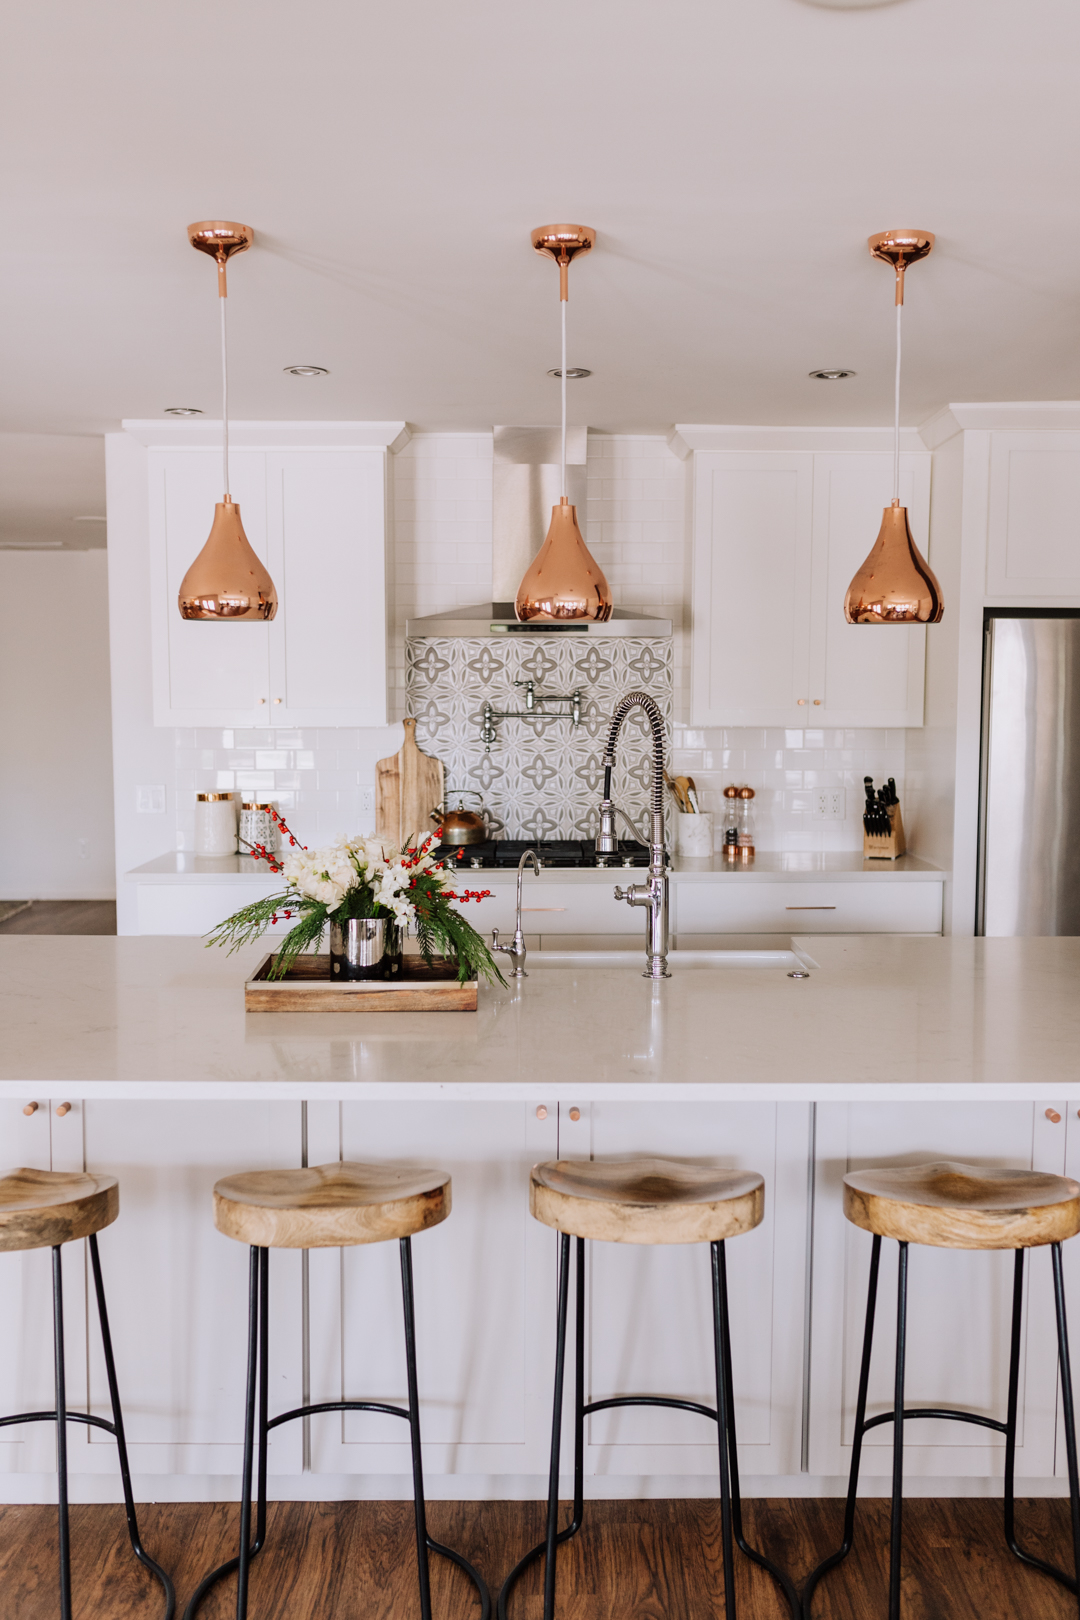 a clean kitchen before a simple gingerbread house decorating party   thelovedesignedlife.com #gingerbreadhouses #kitchen #holidays #christmastime